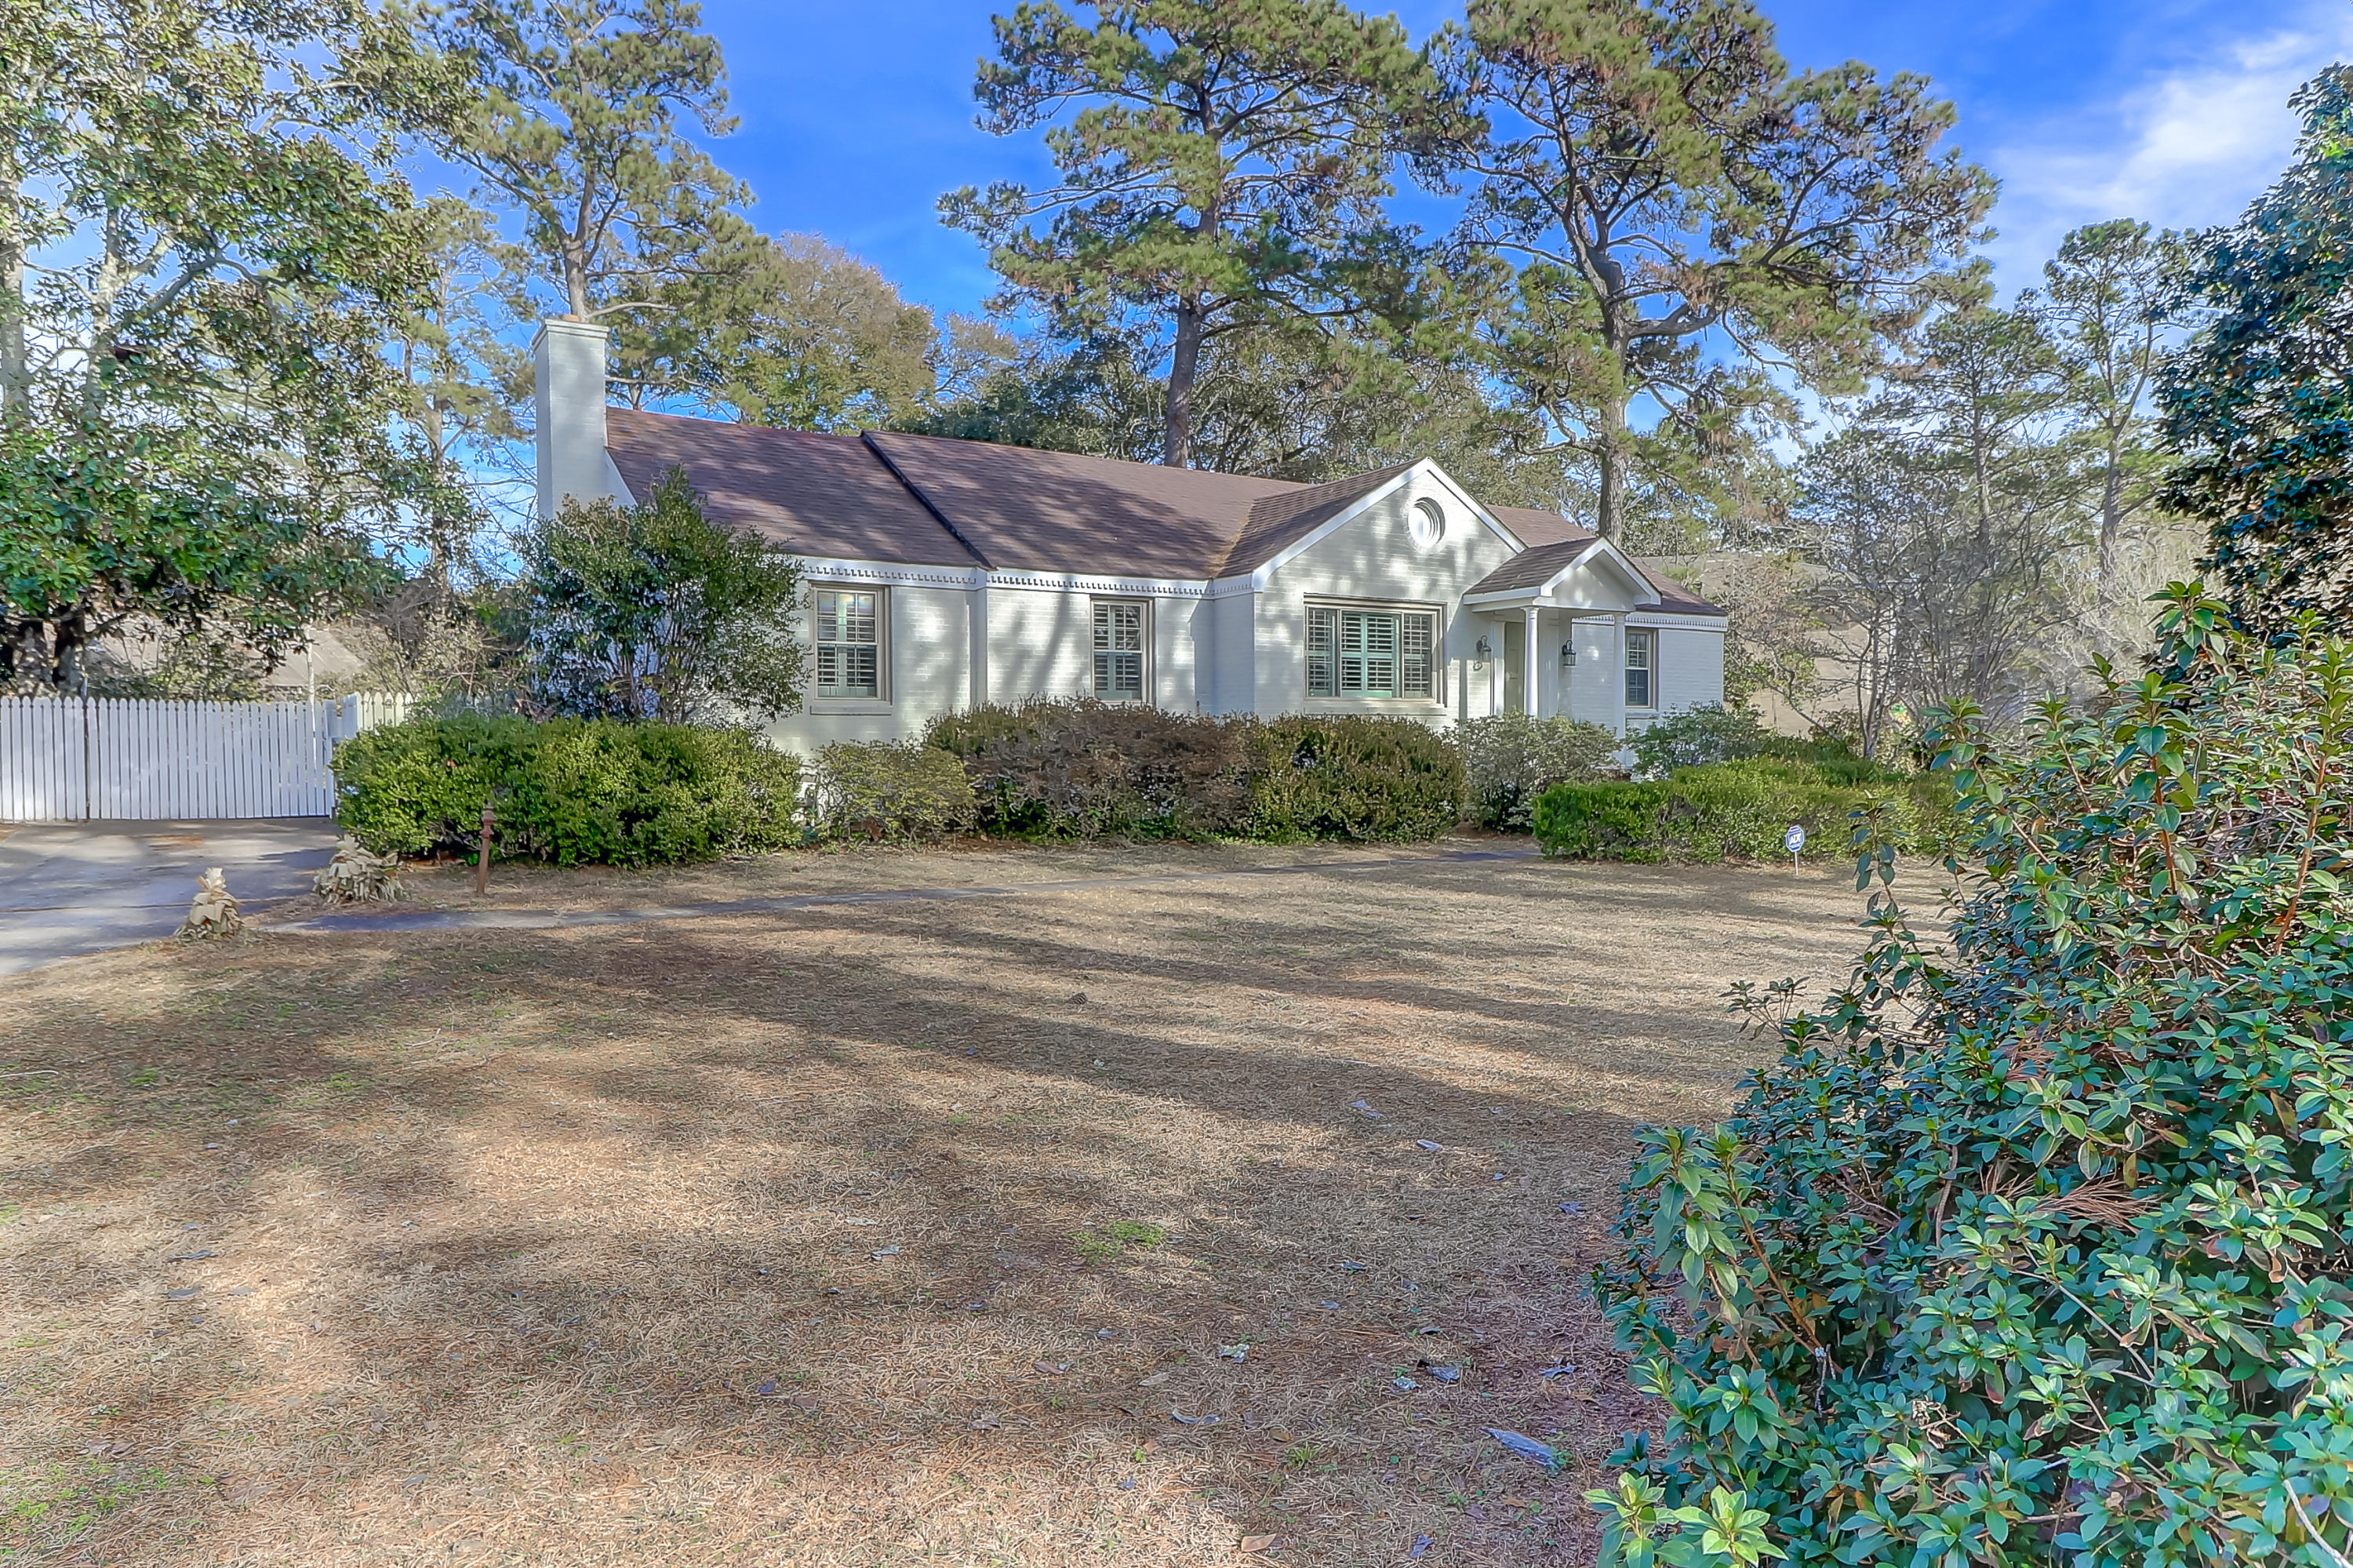 Home for sale 1045 Tall Pine Road, The Groves, Mt. Pleasant, SC